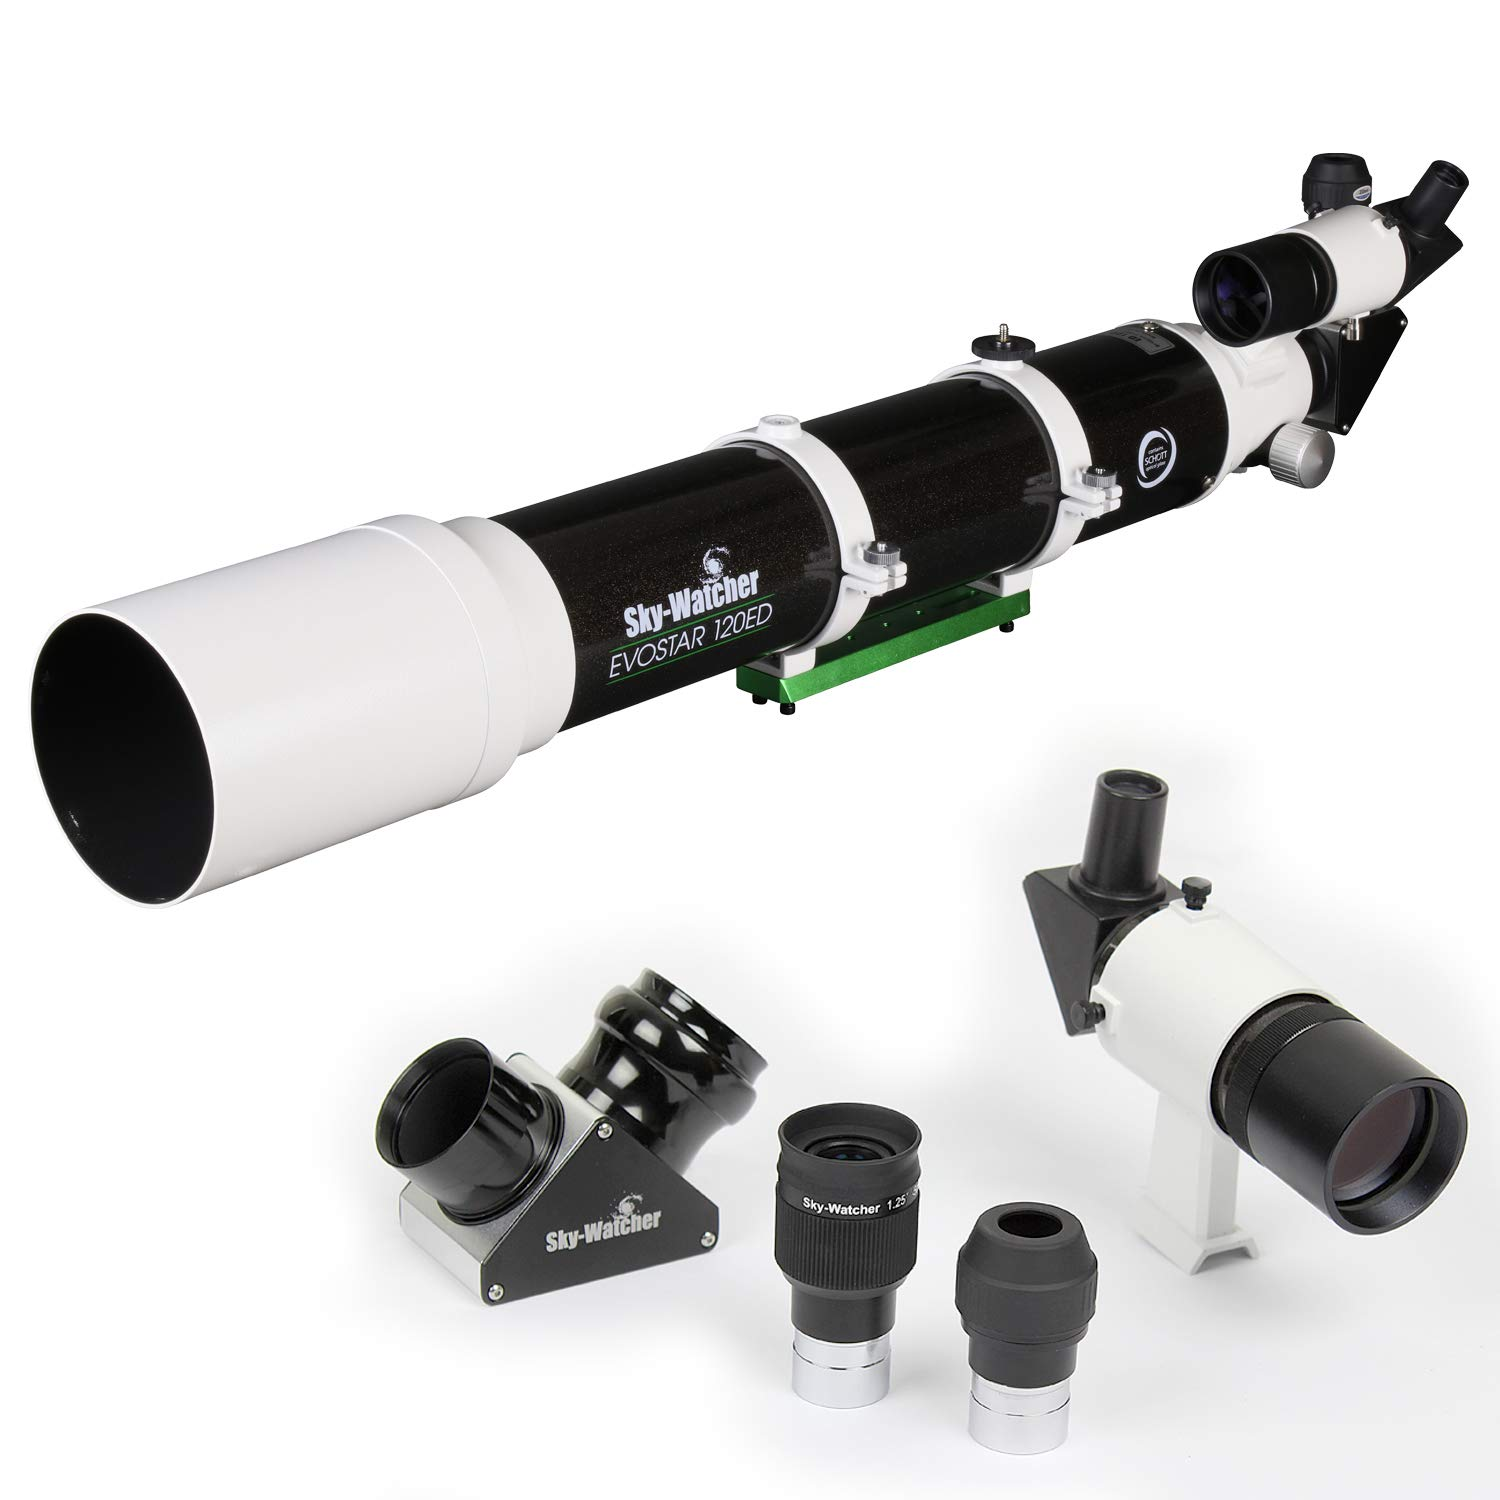 Sky-Watcher EvoStar 120 APO Doublet Refractor – Compact and Portable Optical Tube for Affordable Astrophotography and Visual Astronomy